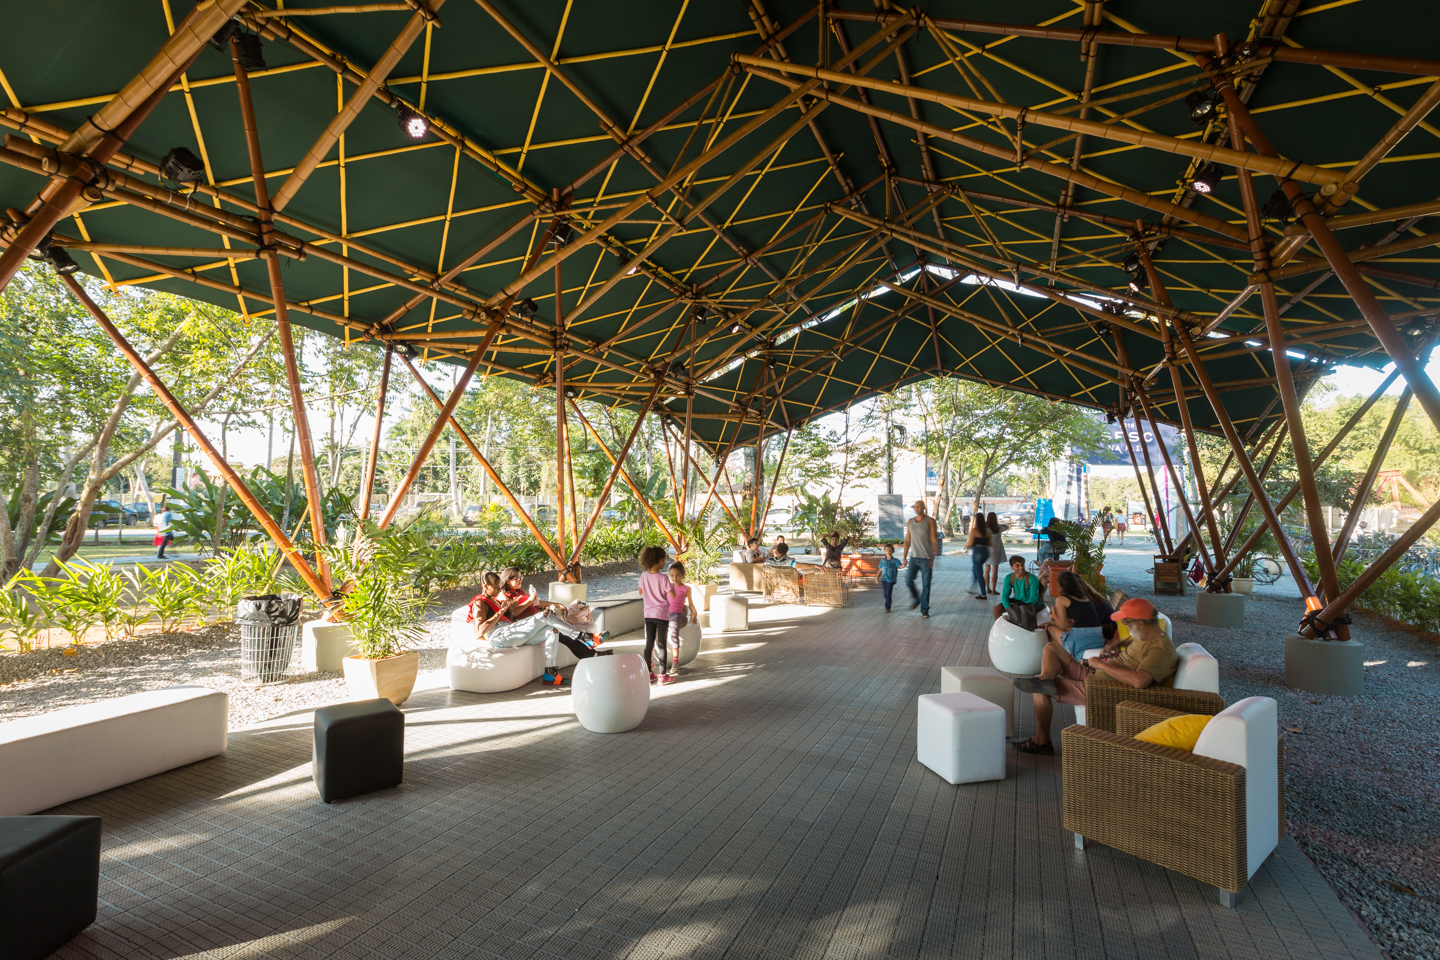 Deployable-bamboo-space-structure-pavilion-Bambutec-9.jpg